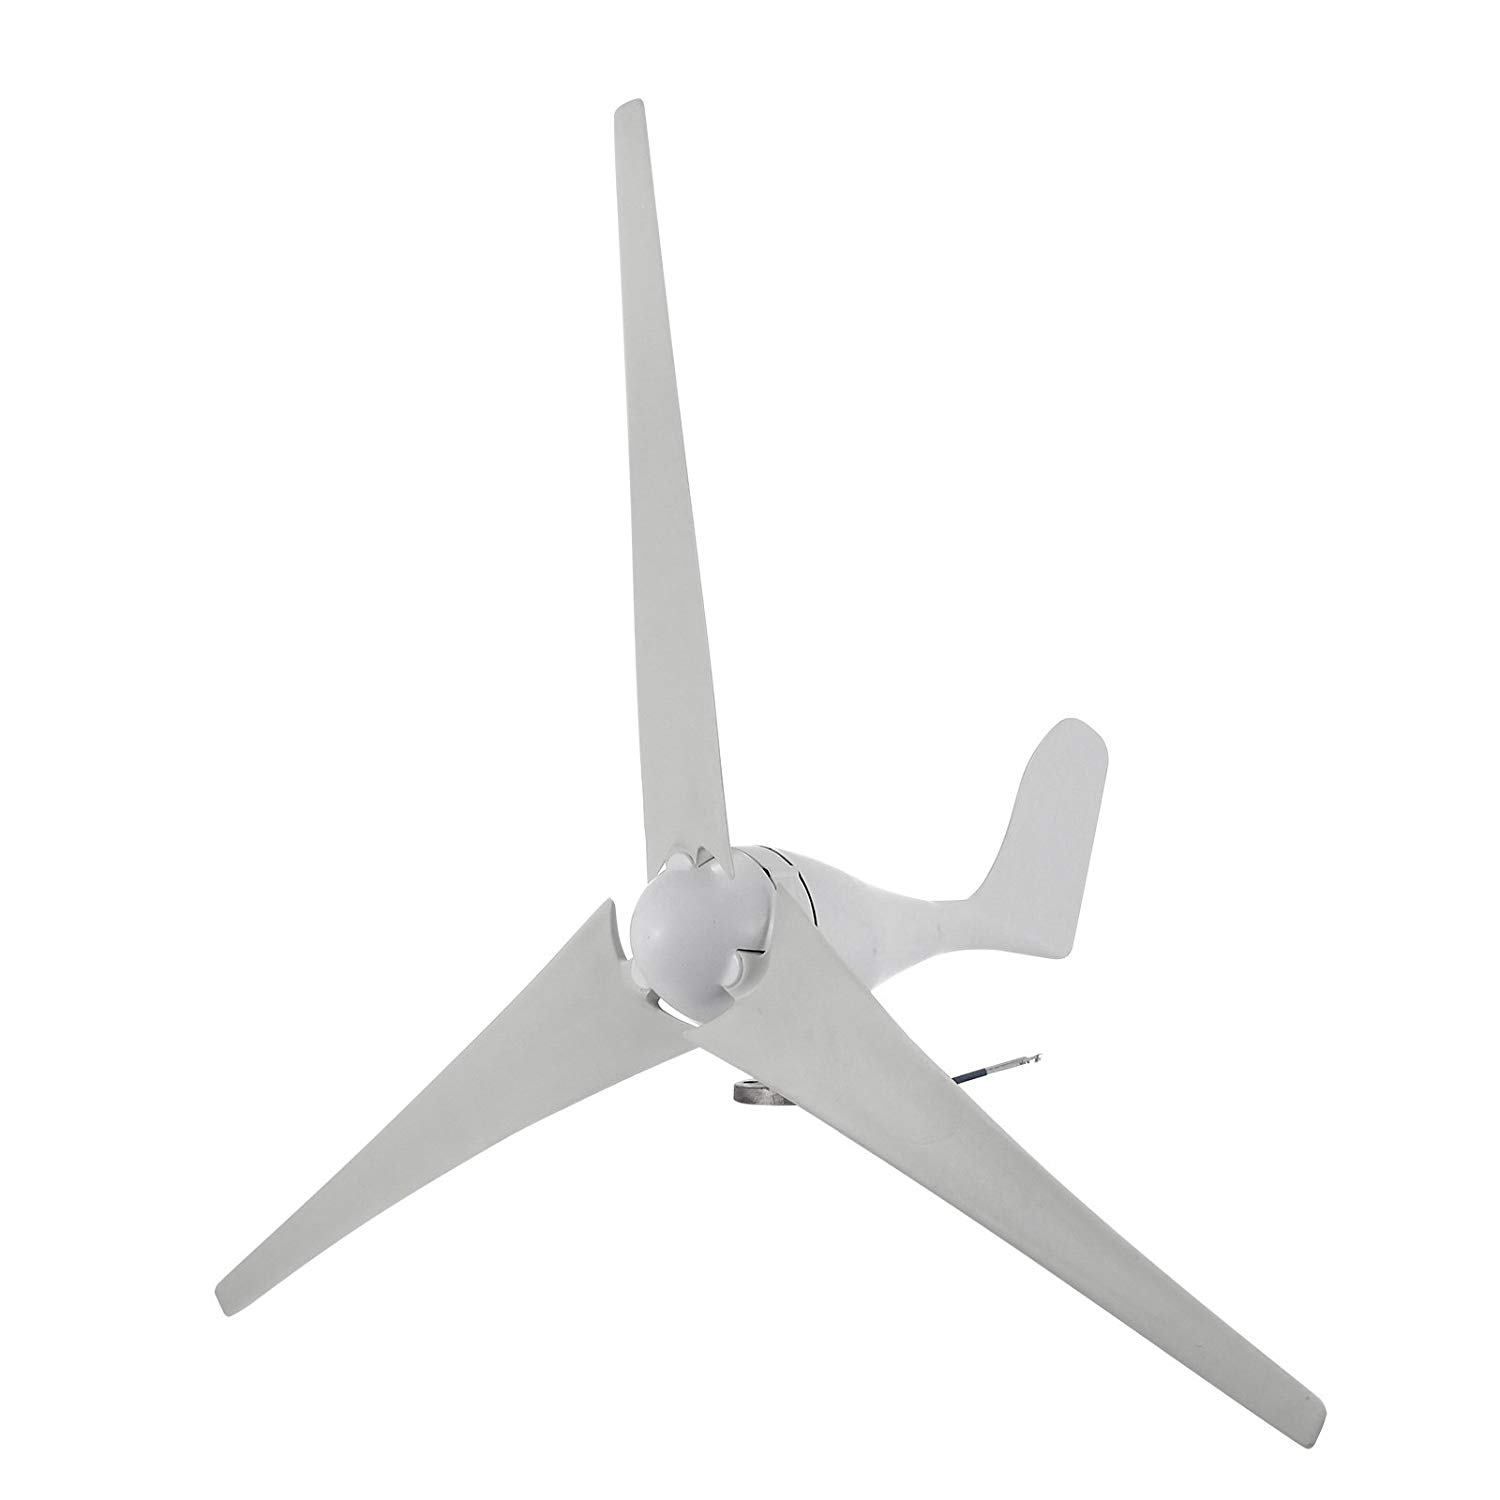 BestEquip 400 Watt Wind Turbine DC12V Wind Turbine Kit 800RPM Wind Turbine Generator with 20A Hybrid Controller Perfect for Green Windmill Home and Business (wind generator)